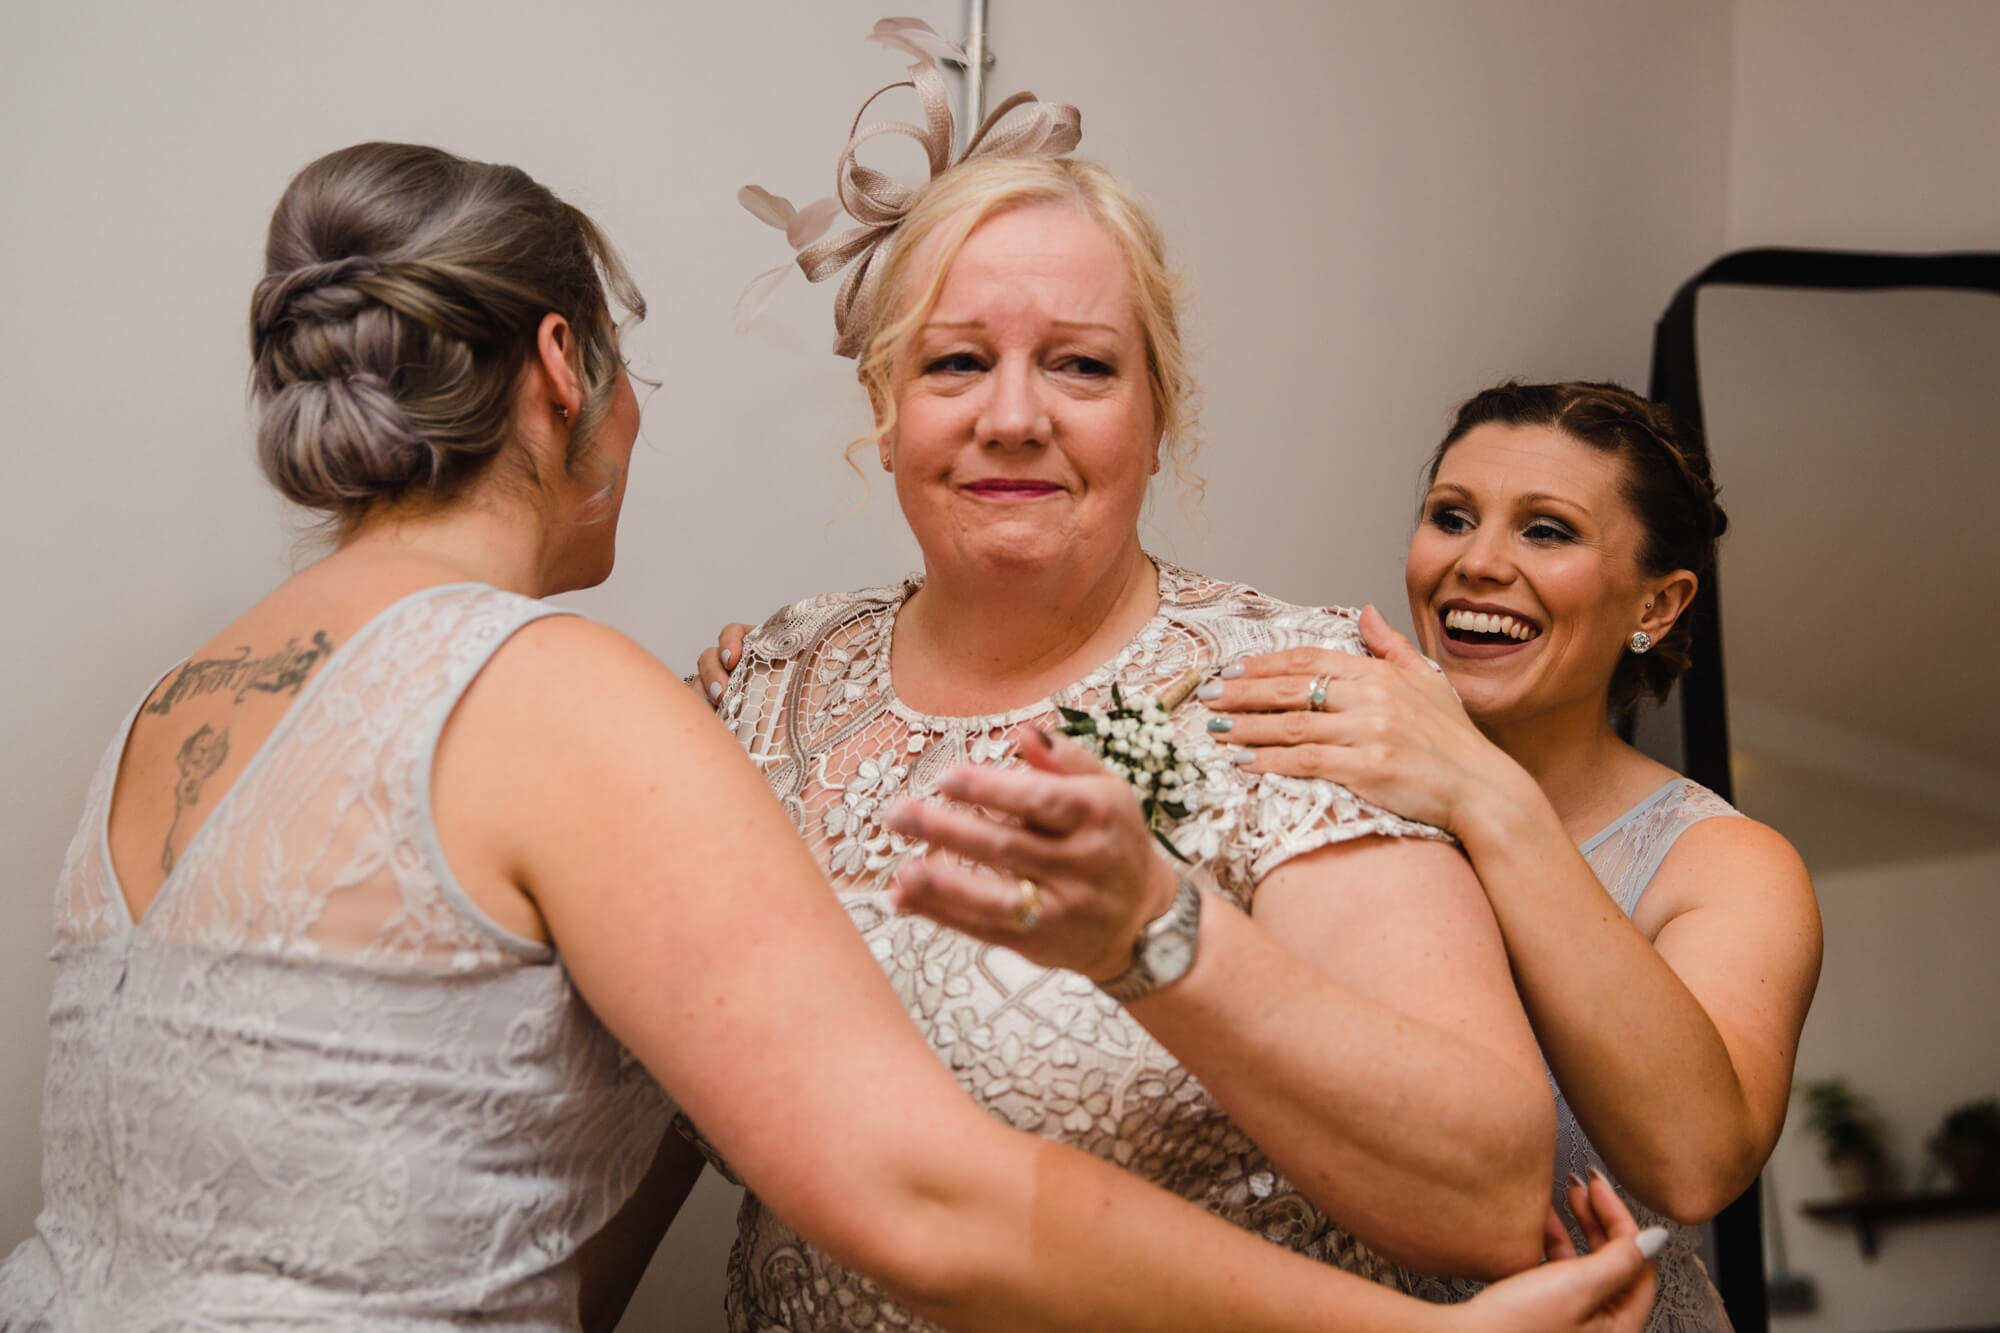 intimate moment as the mother of bride being comforted by bridesmaids